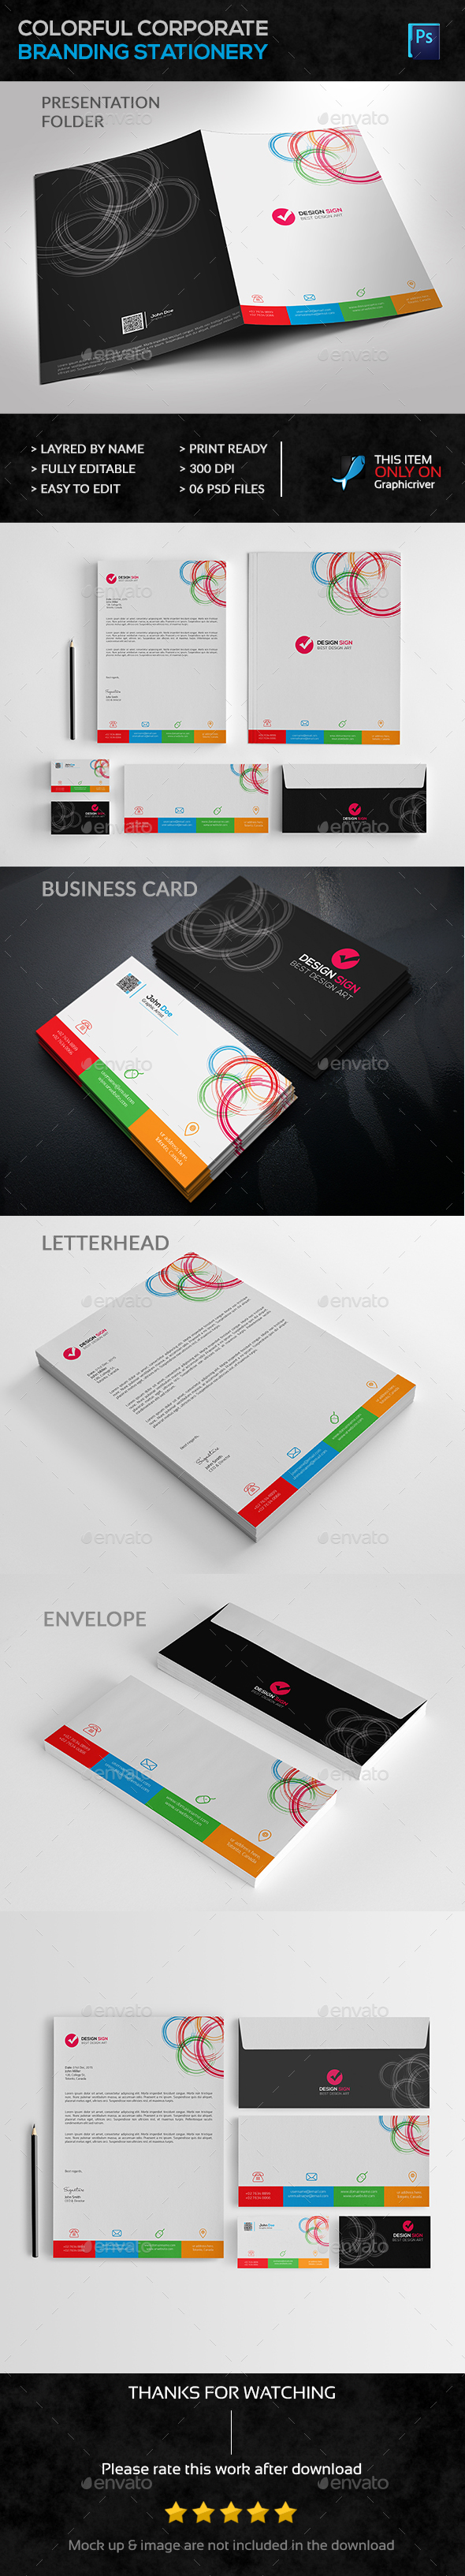 Corporate Branding Stationery - Stationery Print Templates